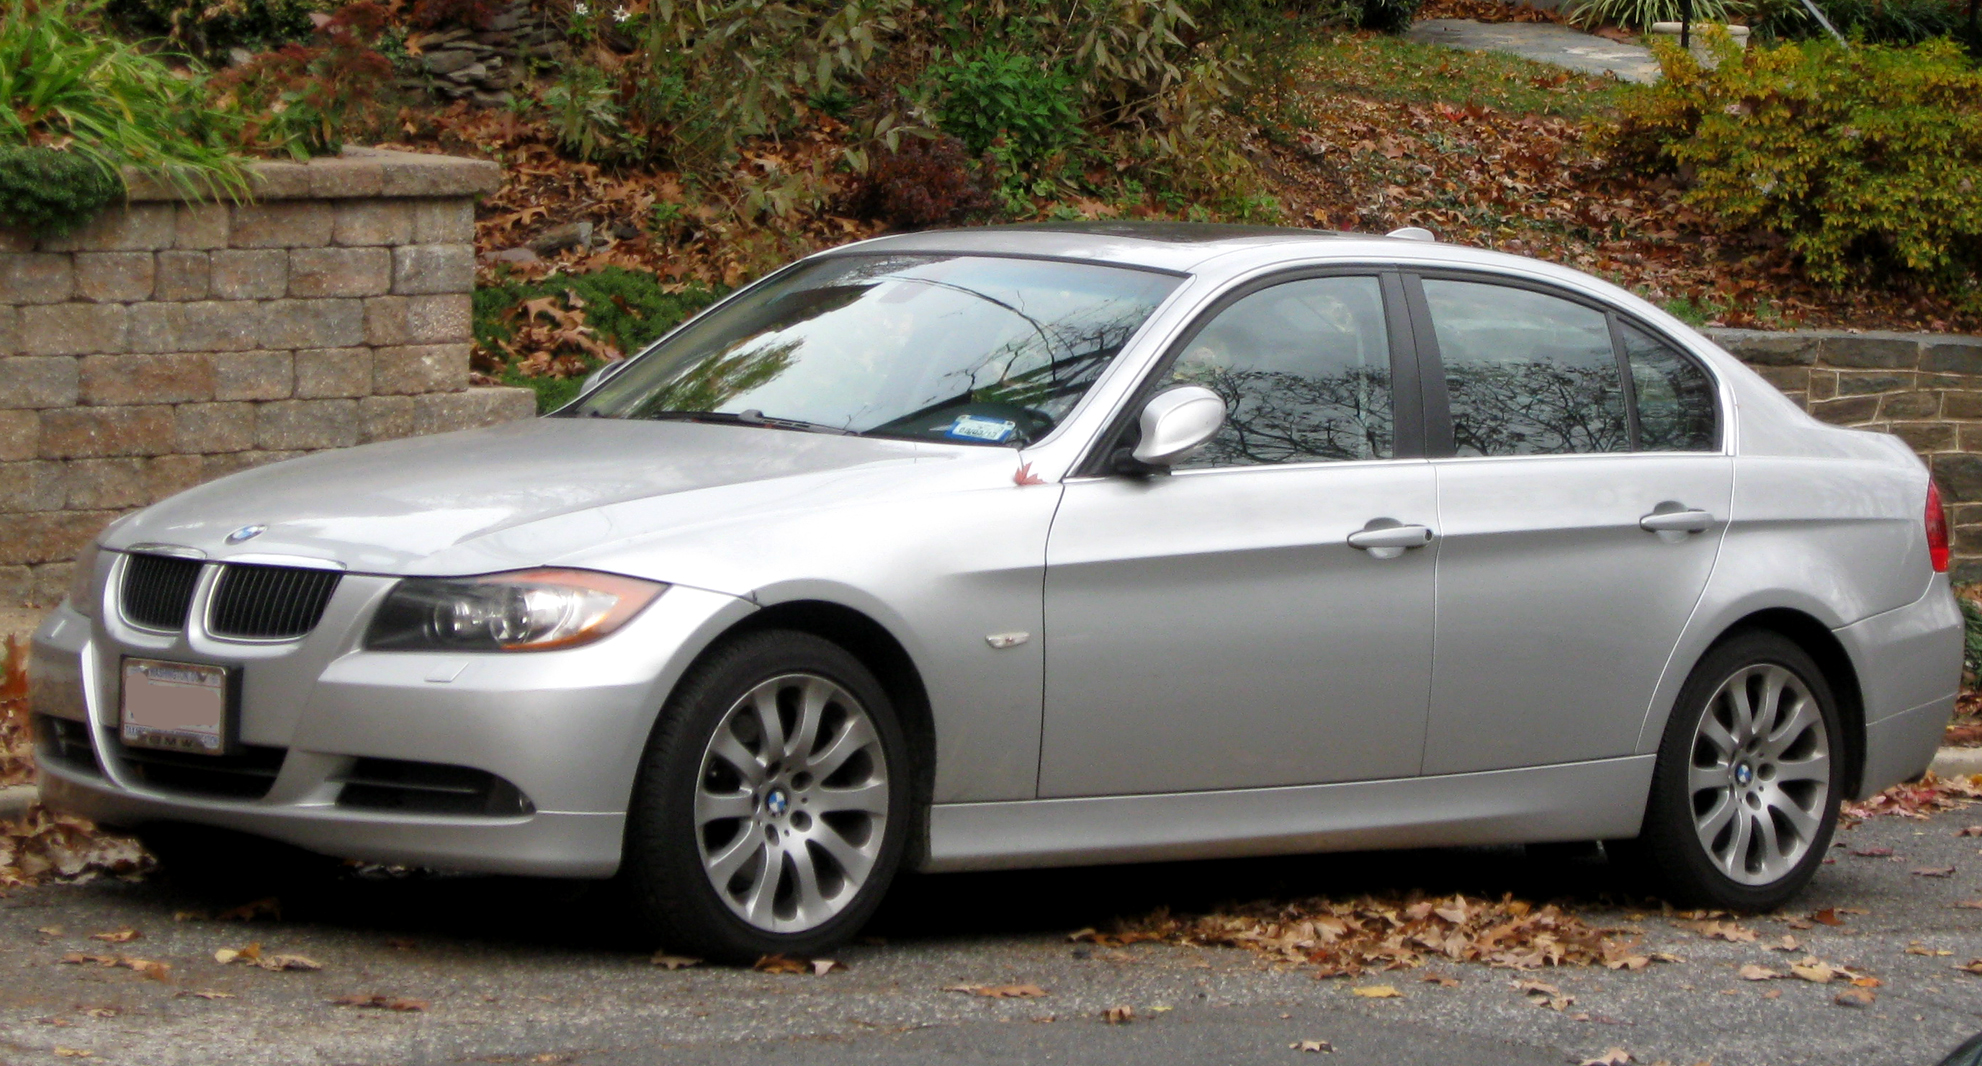 File:2006 BMW 330Xi sedan -- 11-13-2011.jpg - Wikimedia Commons